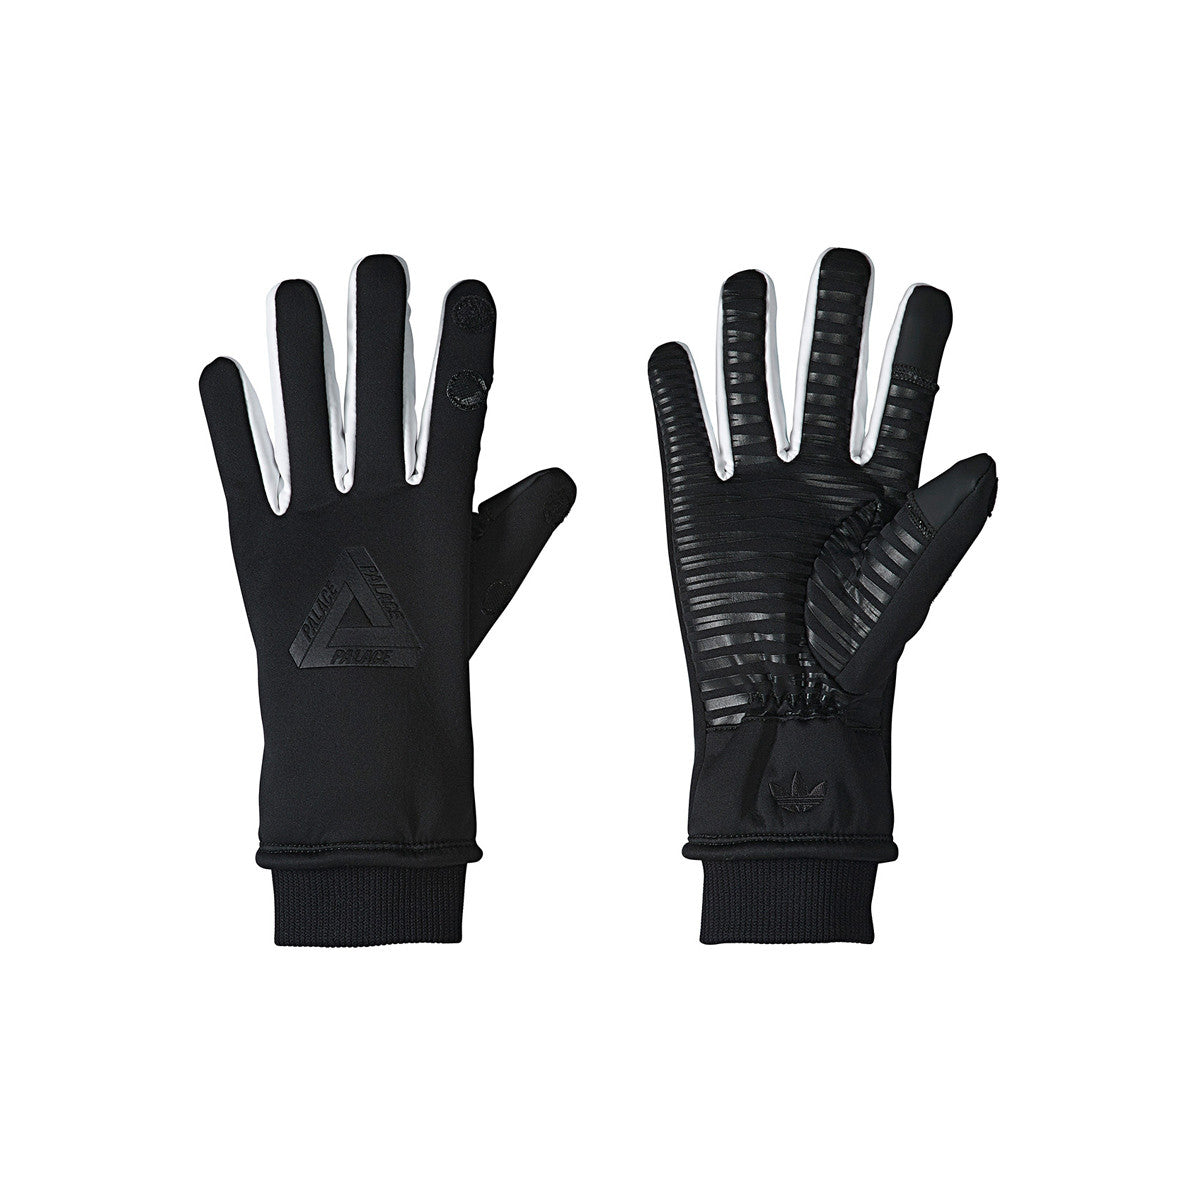 Adidas x Palace Glove - Black